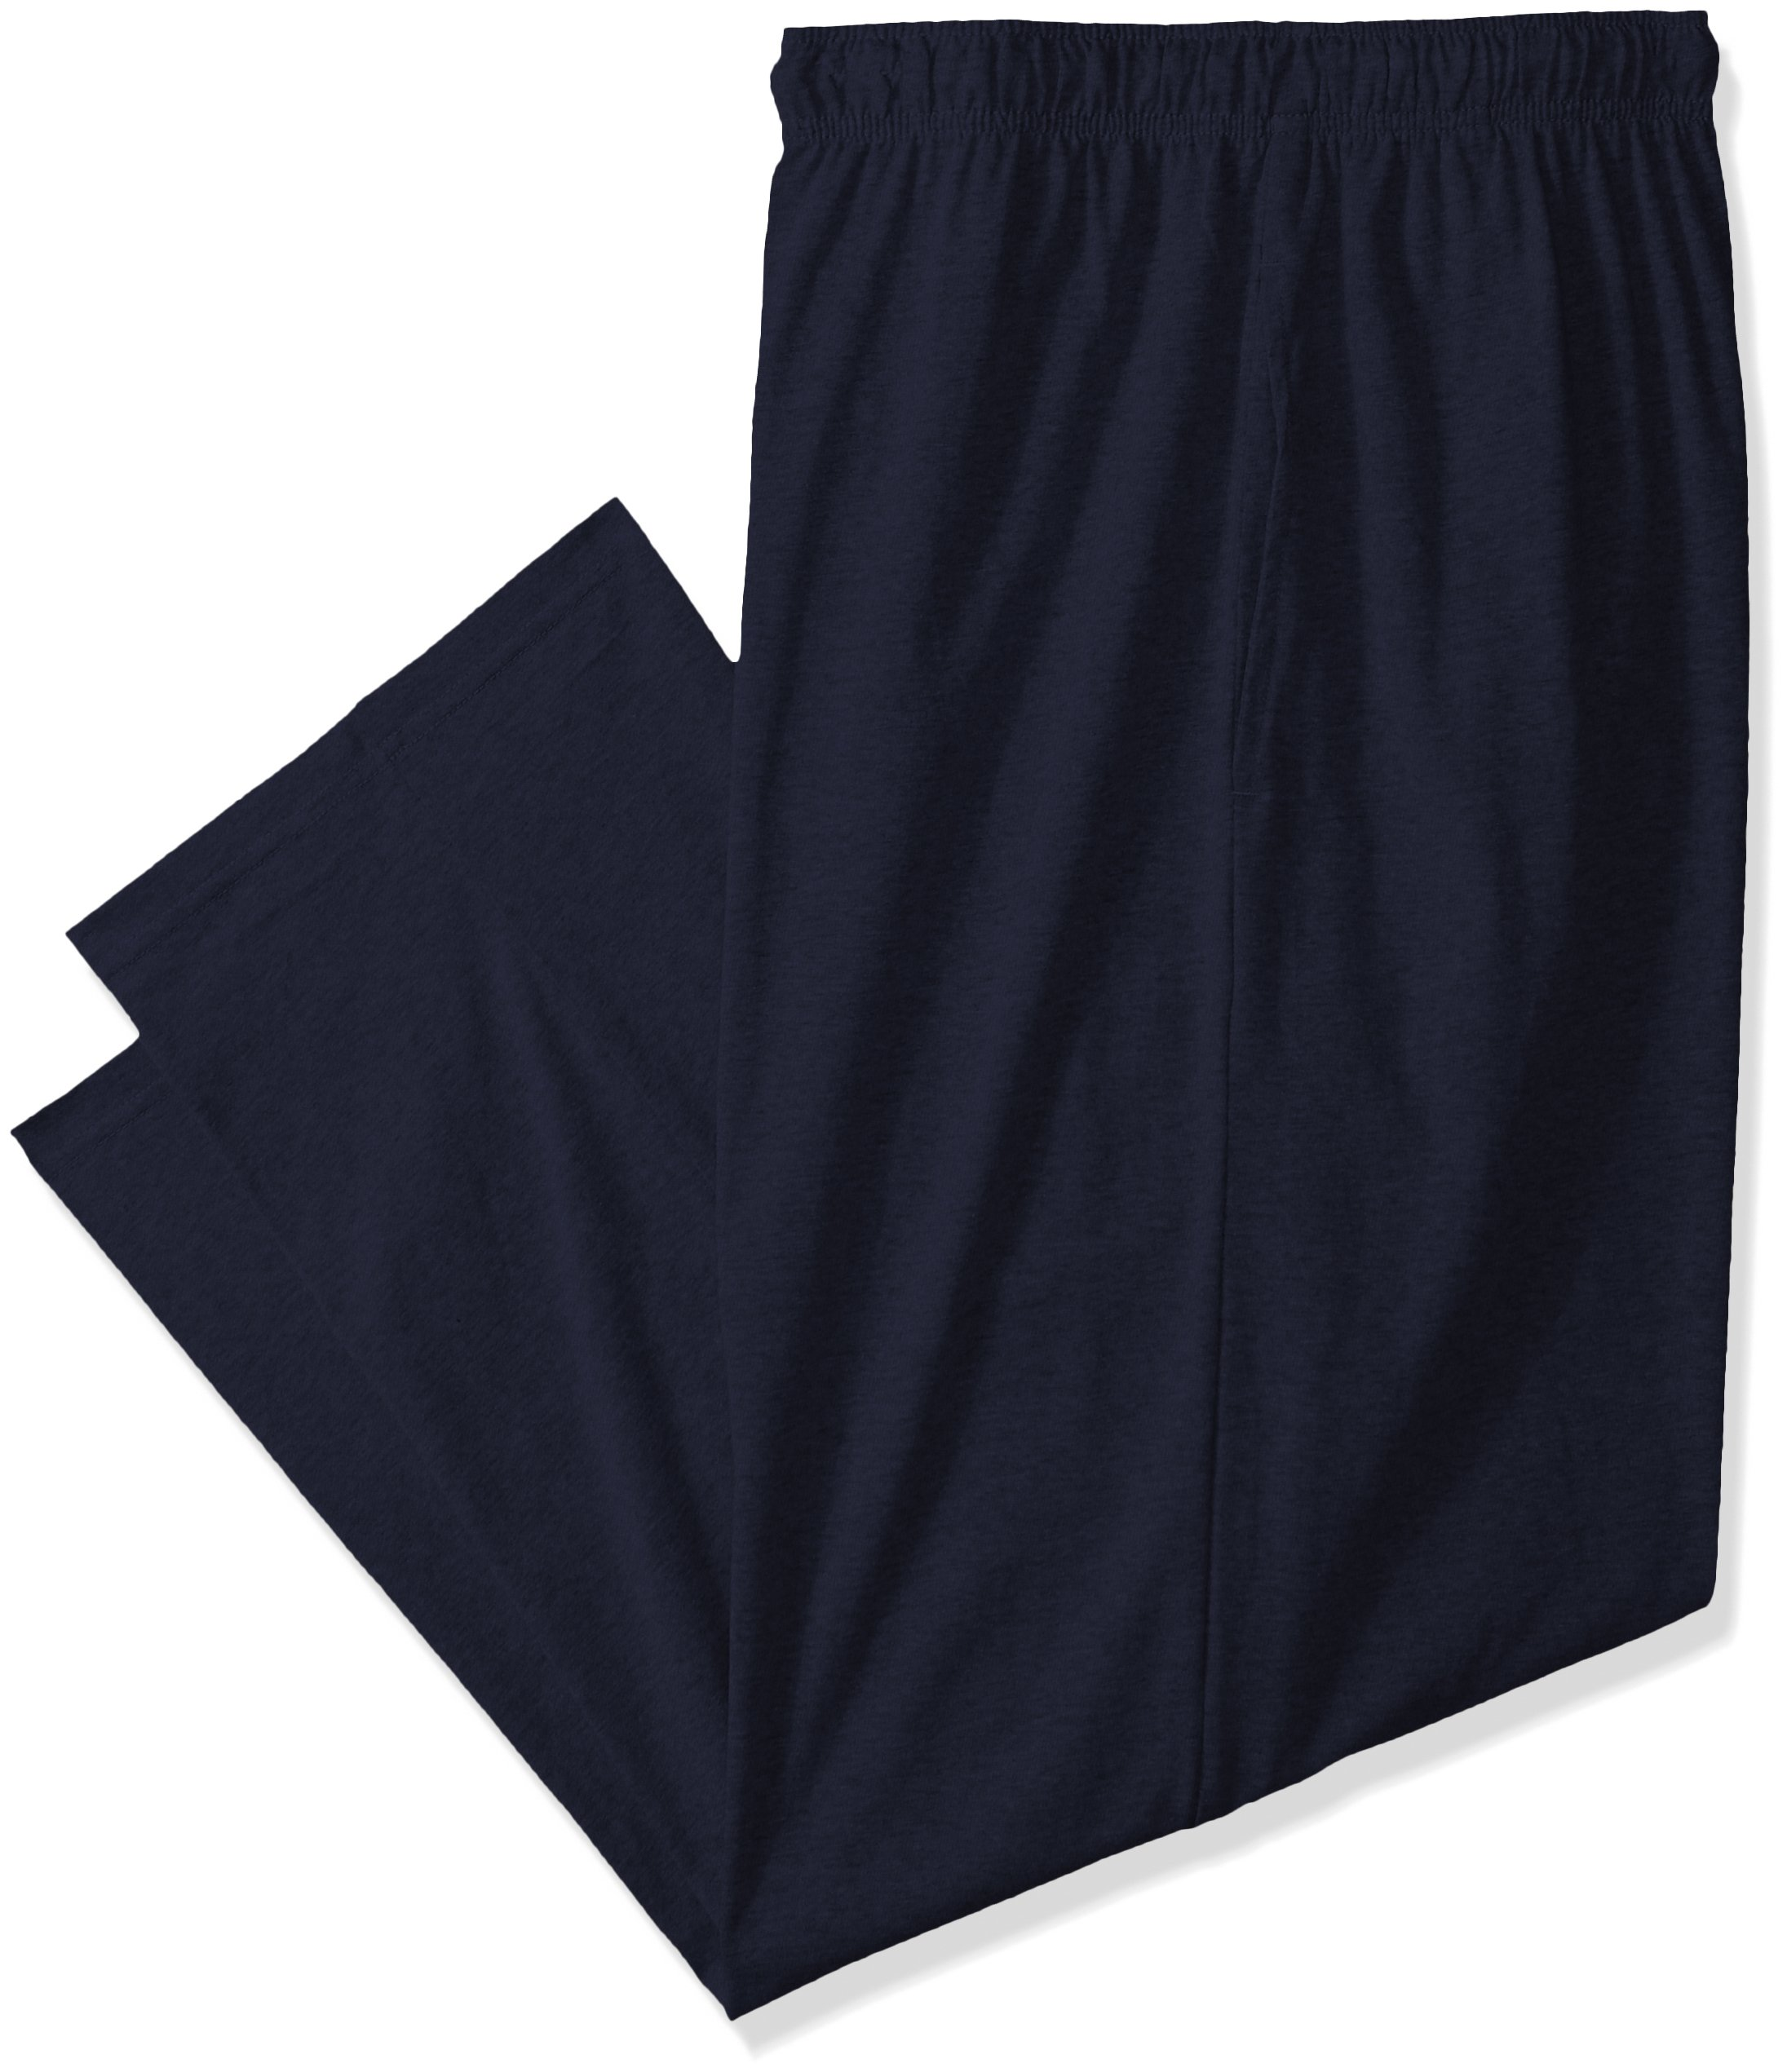 Fruit of the Loom Men's  Jersey Knit Sleep Pant, Navy, Large